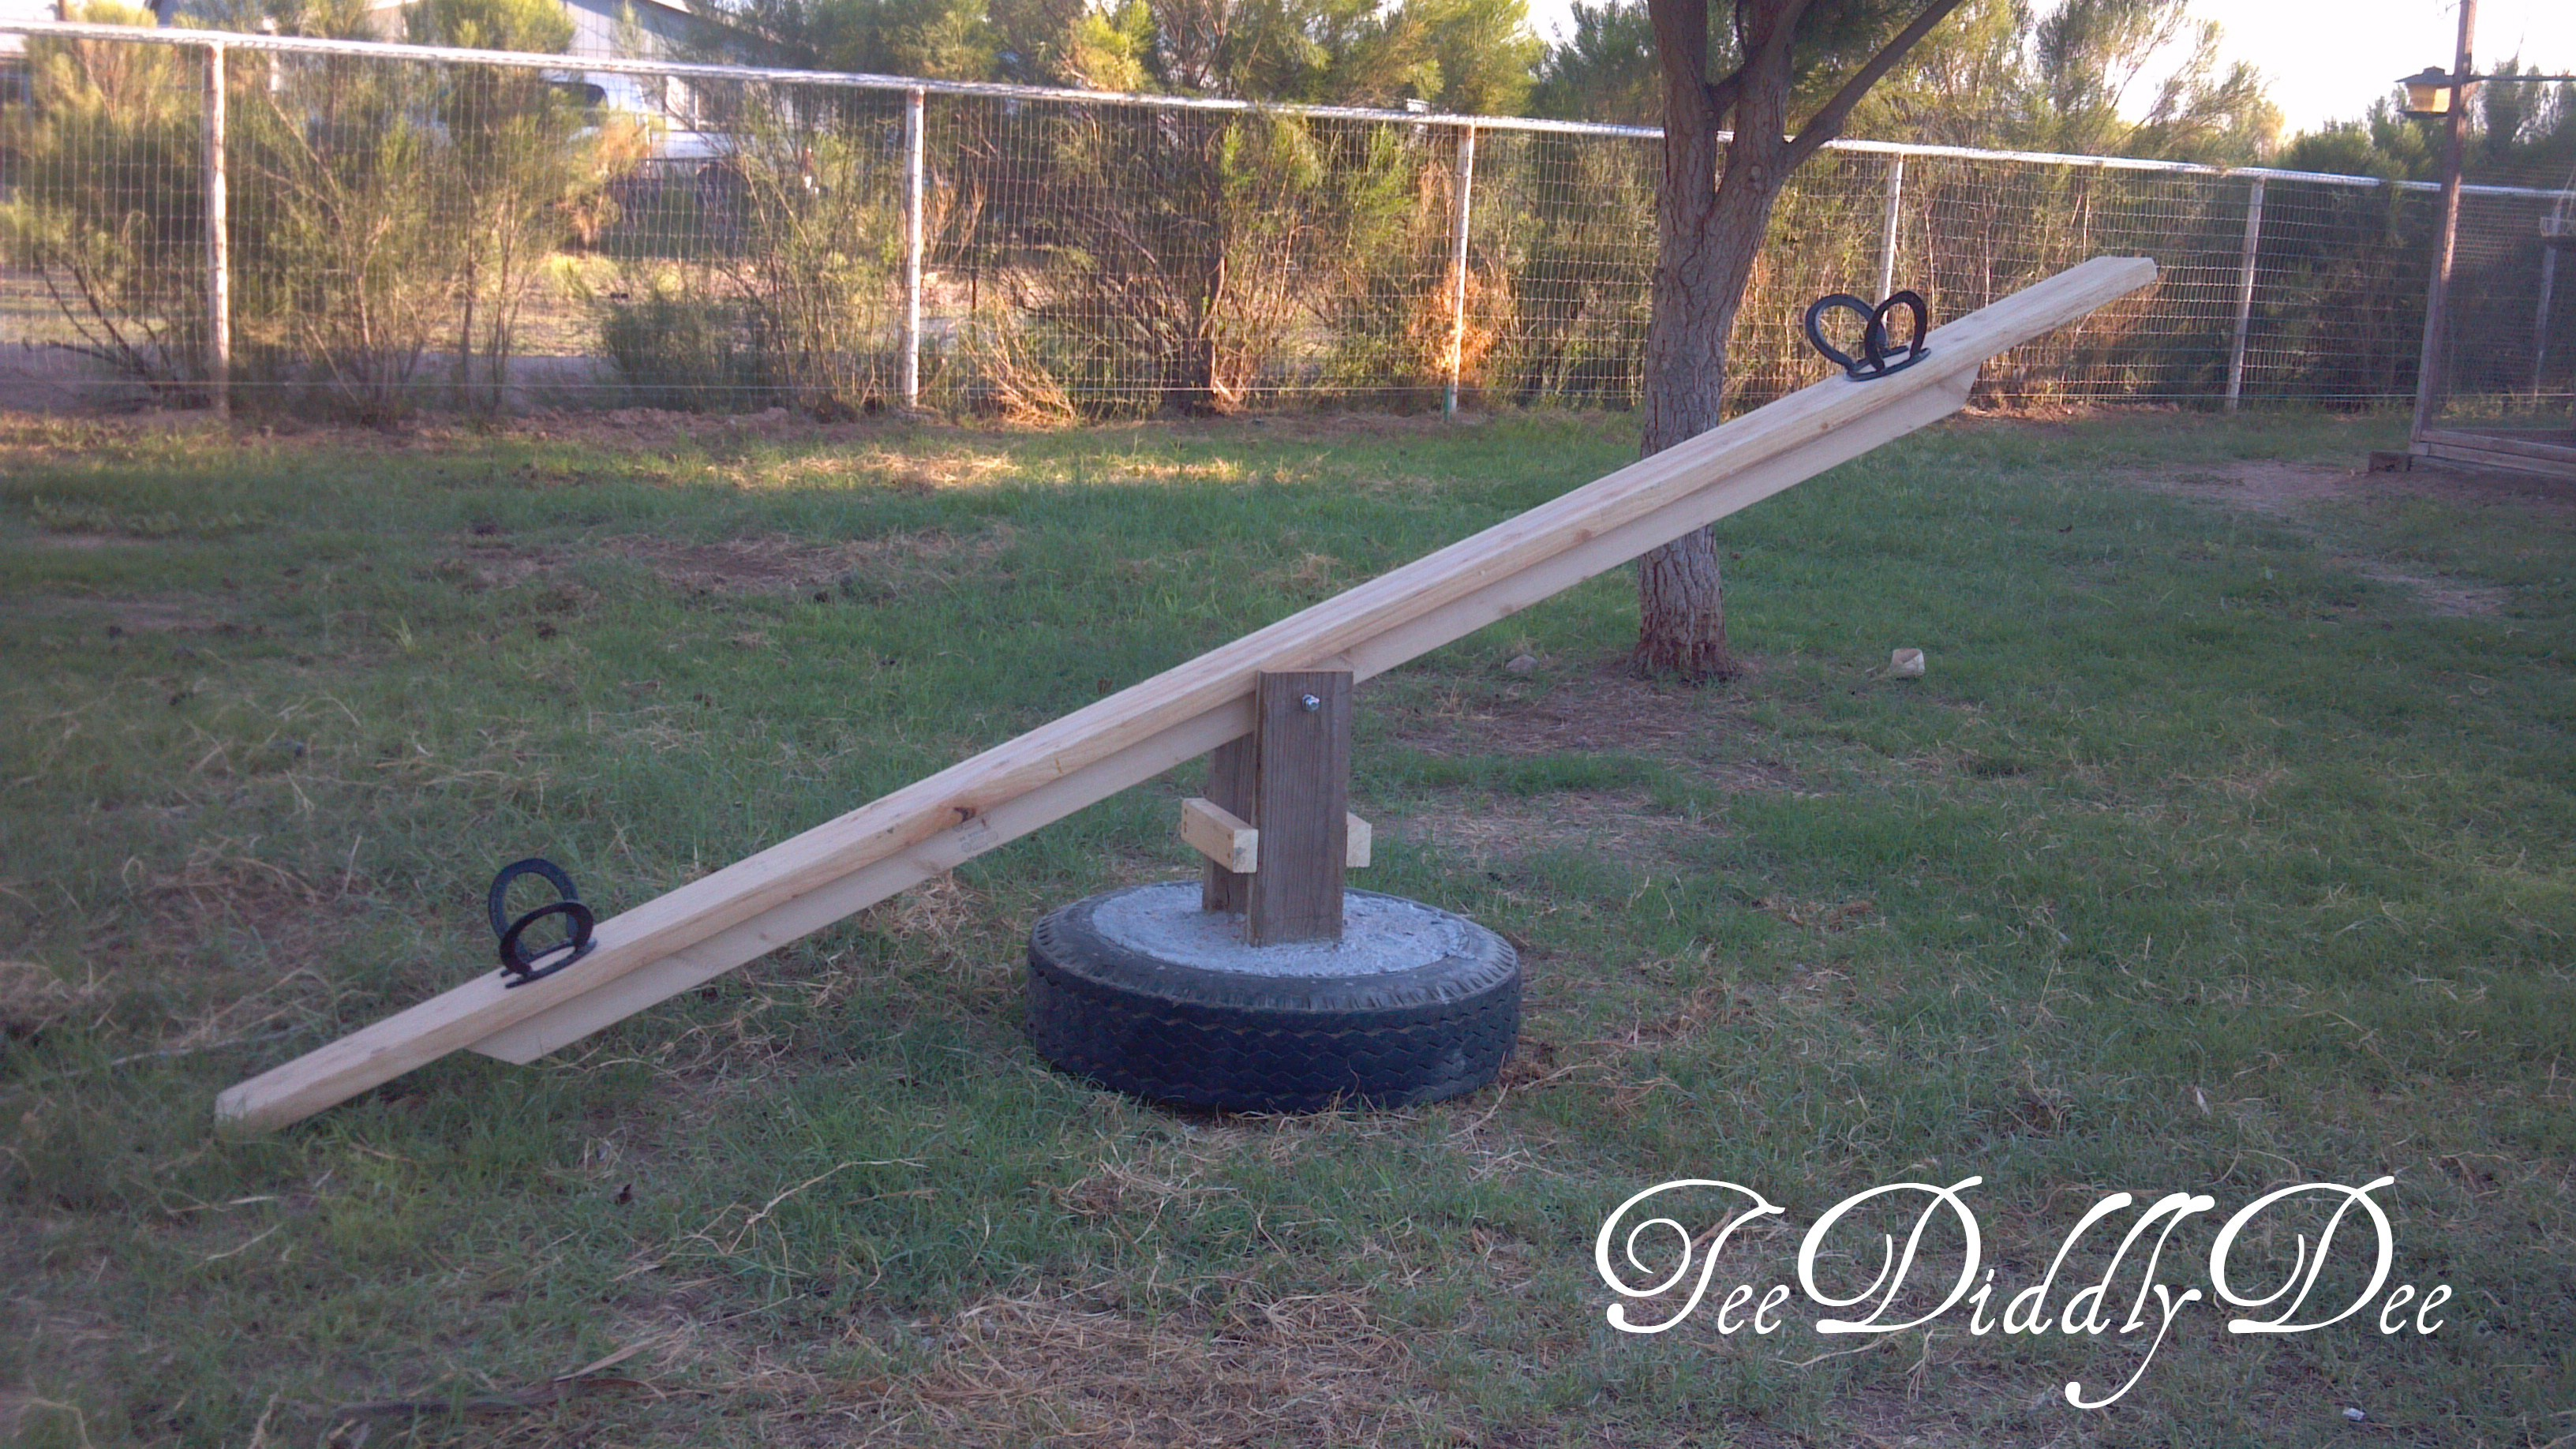 Attractive Teeter Totter for Kids Play Ground Idea: Tee Totter | Teeter Totter | Toddler See Saw